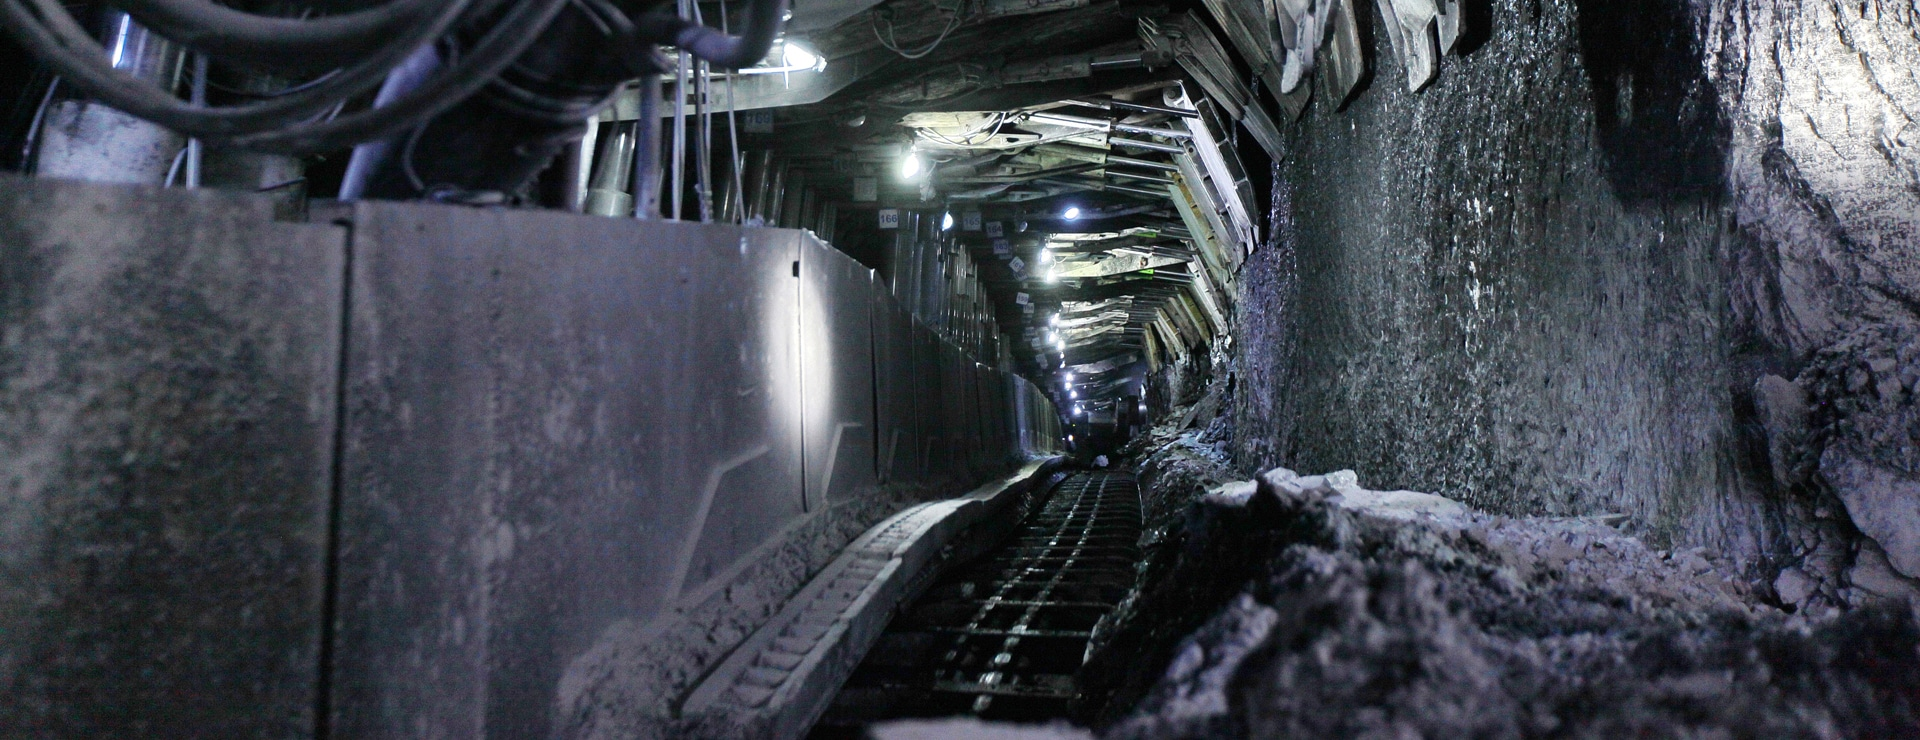 New opportunities at Rubana mine